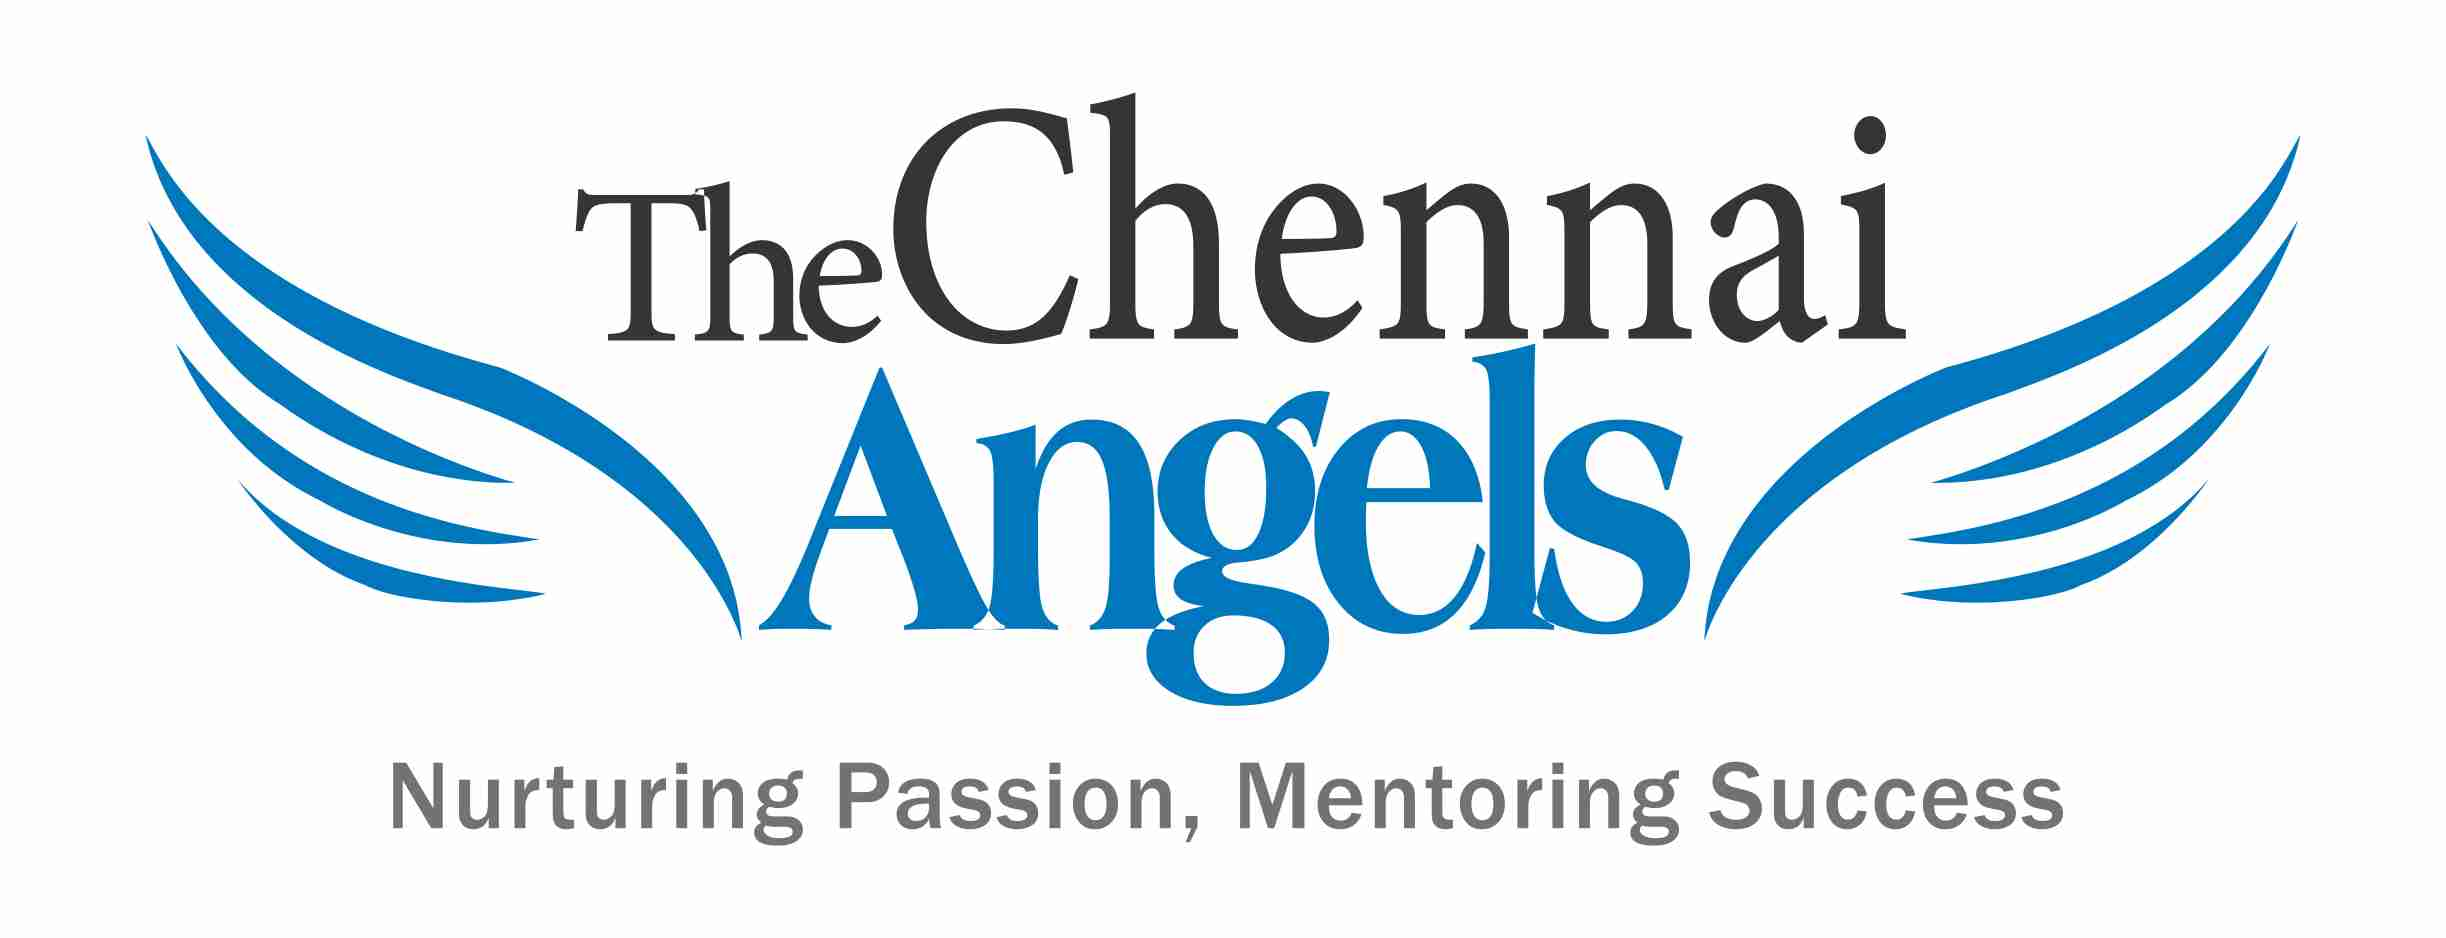 Chennai Angels